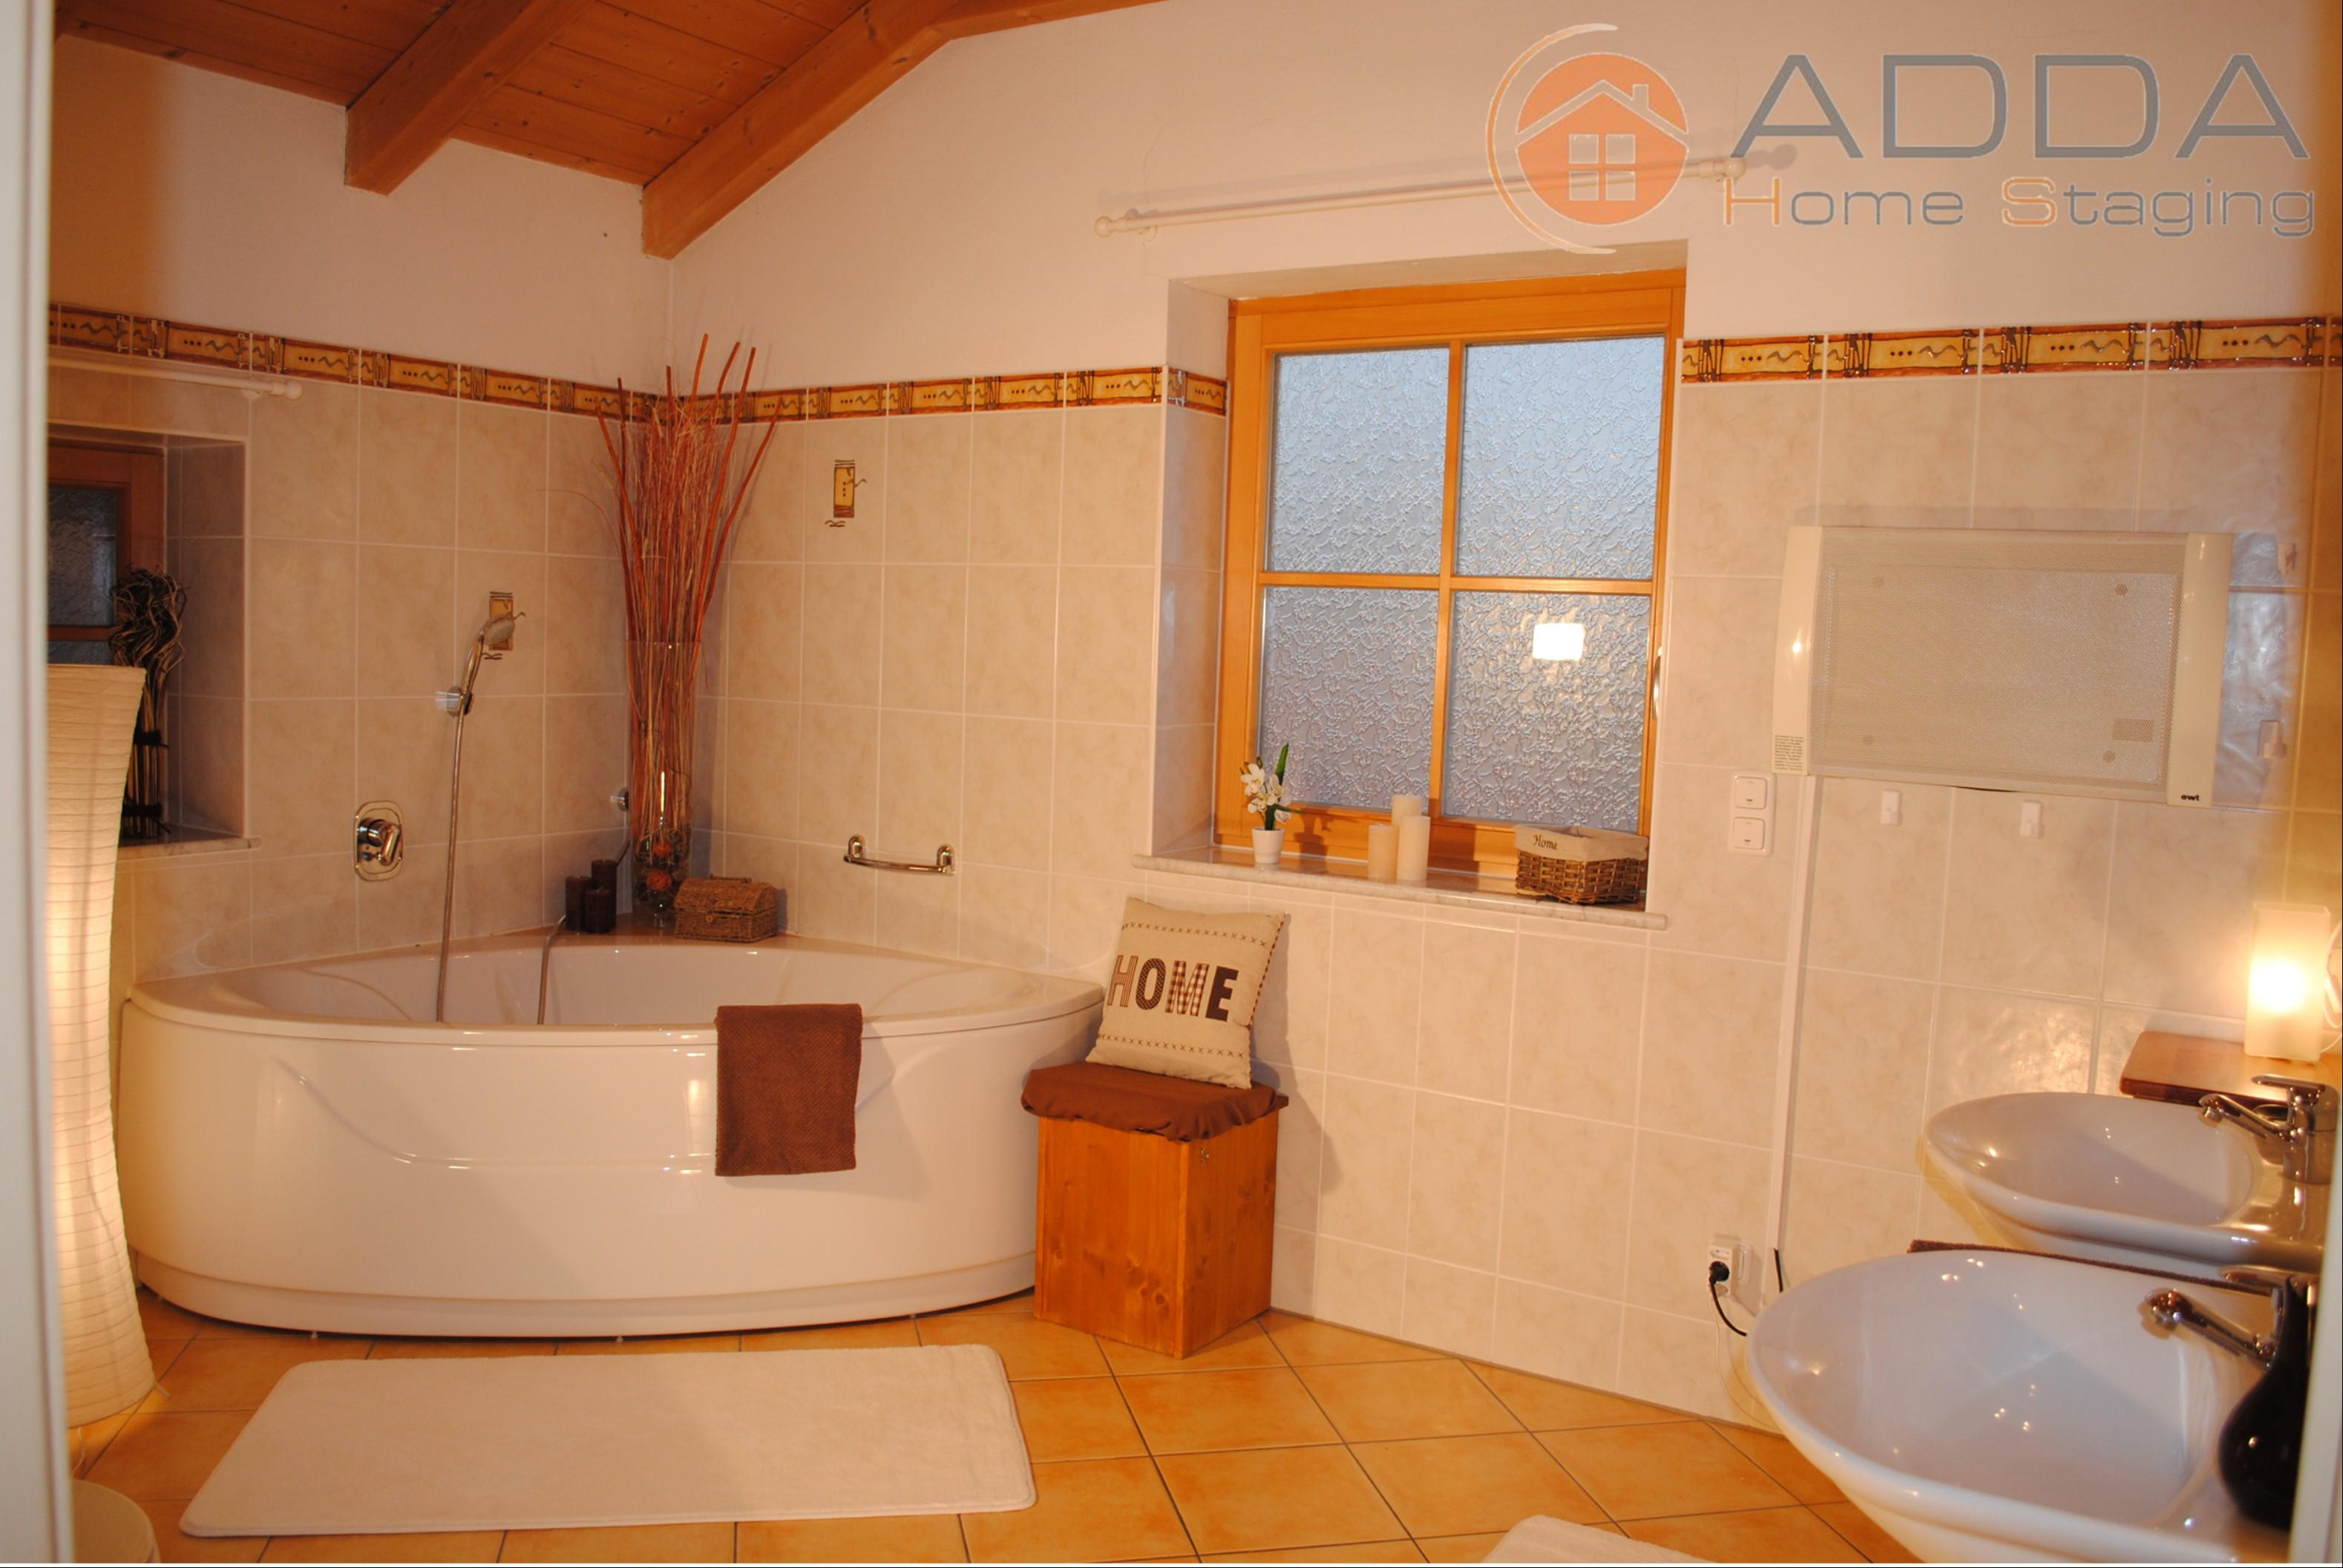 Bad nach dem Home Staging #landhausstil #eckbadewanne ©ADDA Home Staging